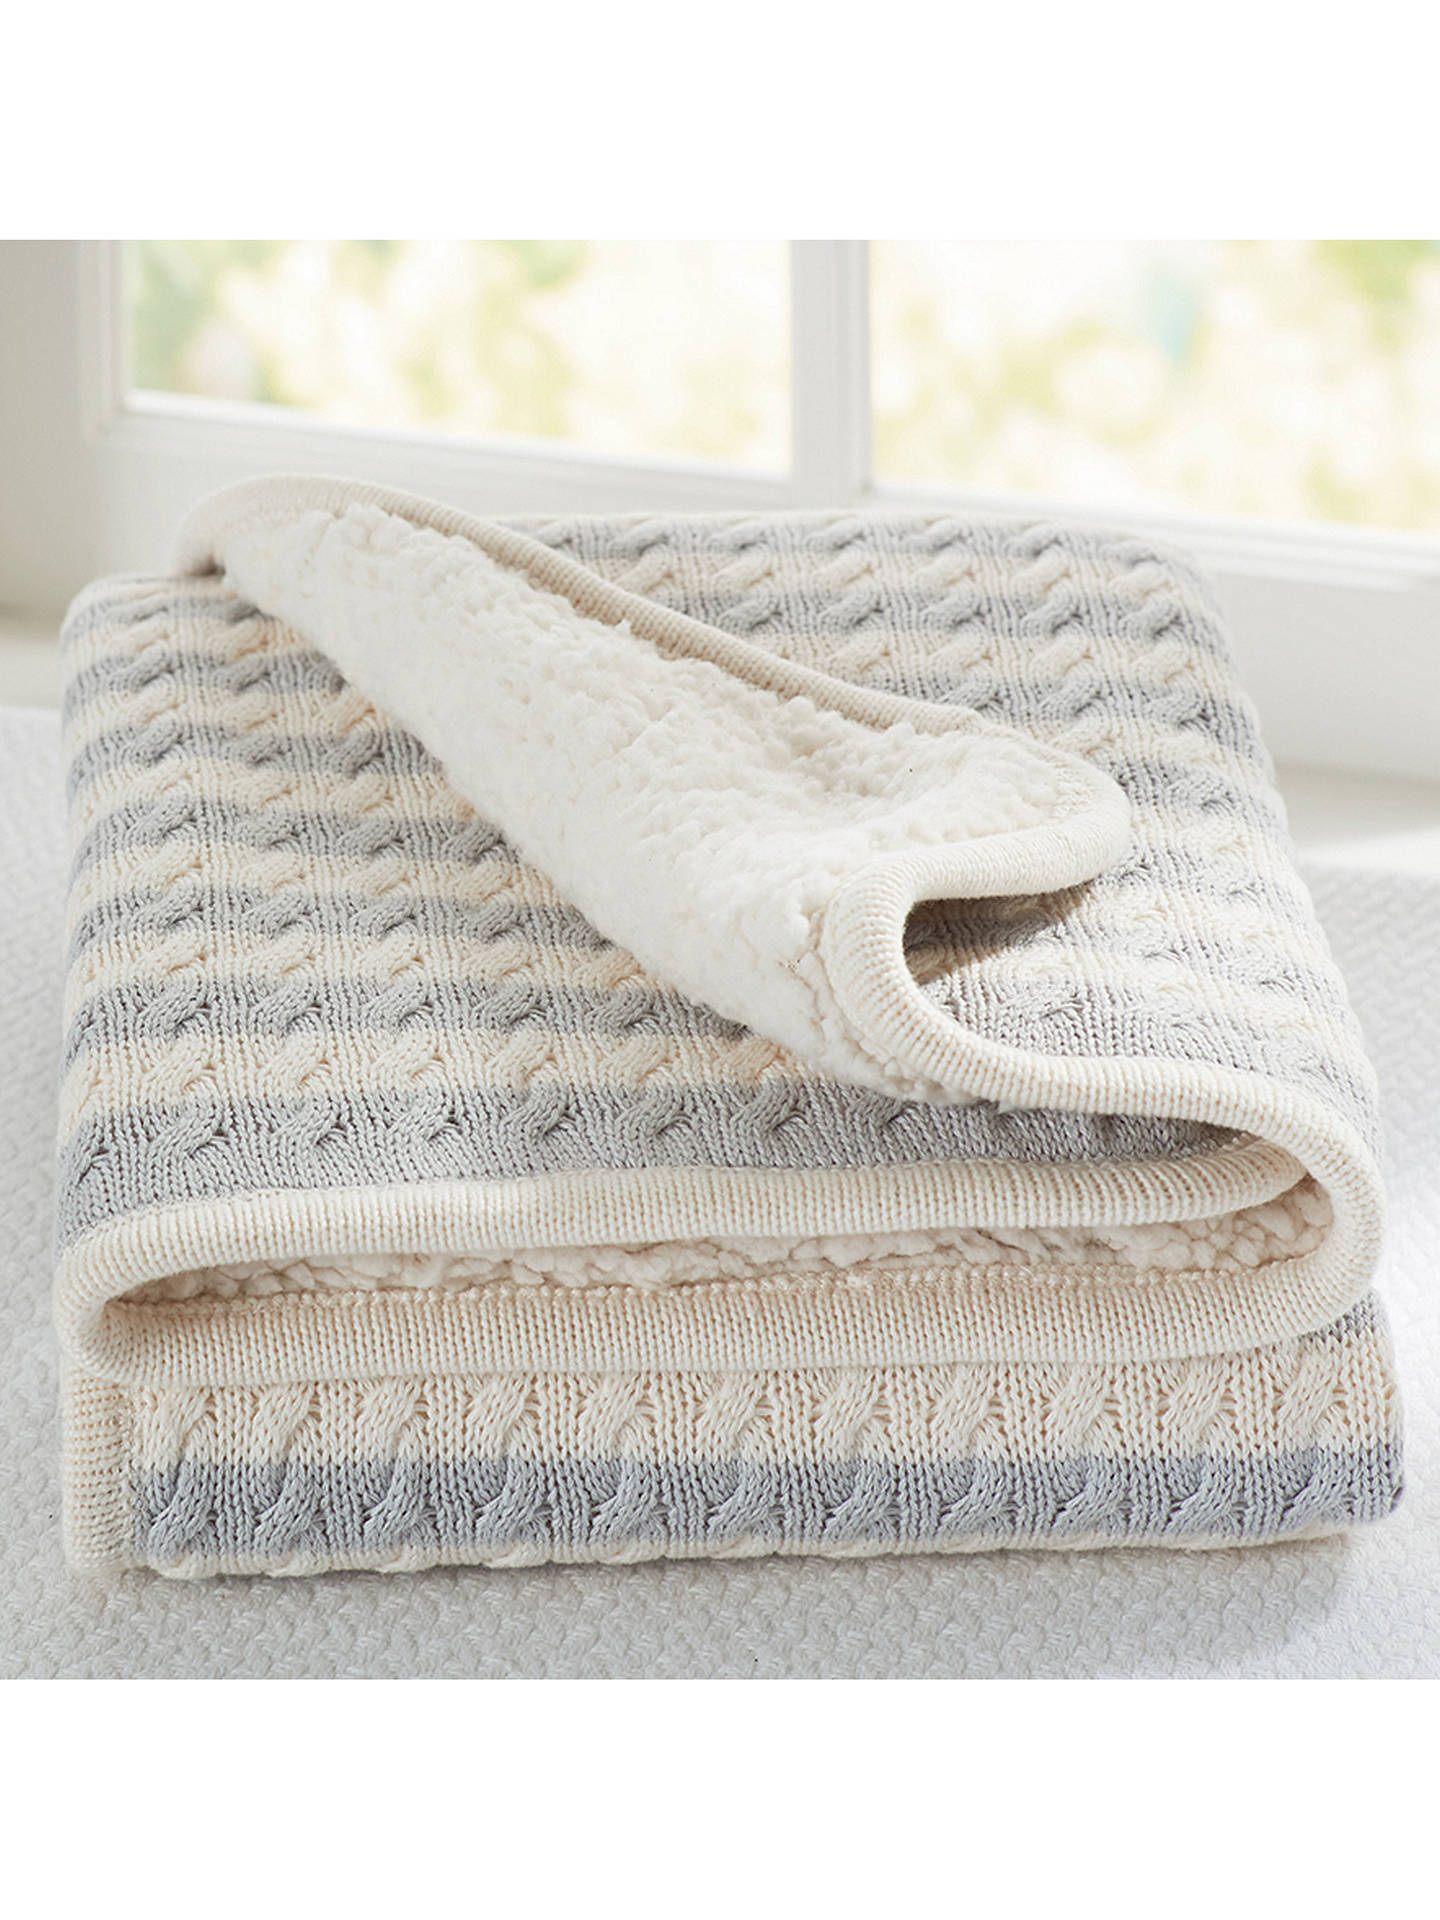 BuyPottery Barn Kids Emerson Baby Blanket, Grey Online at johnlewis.com